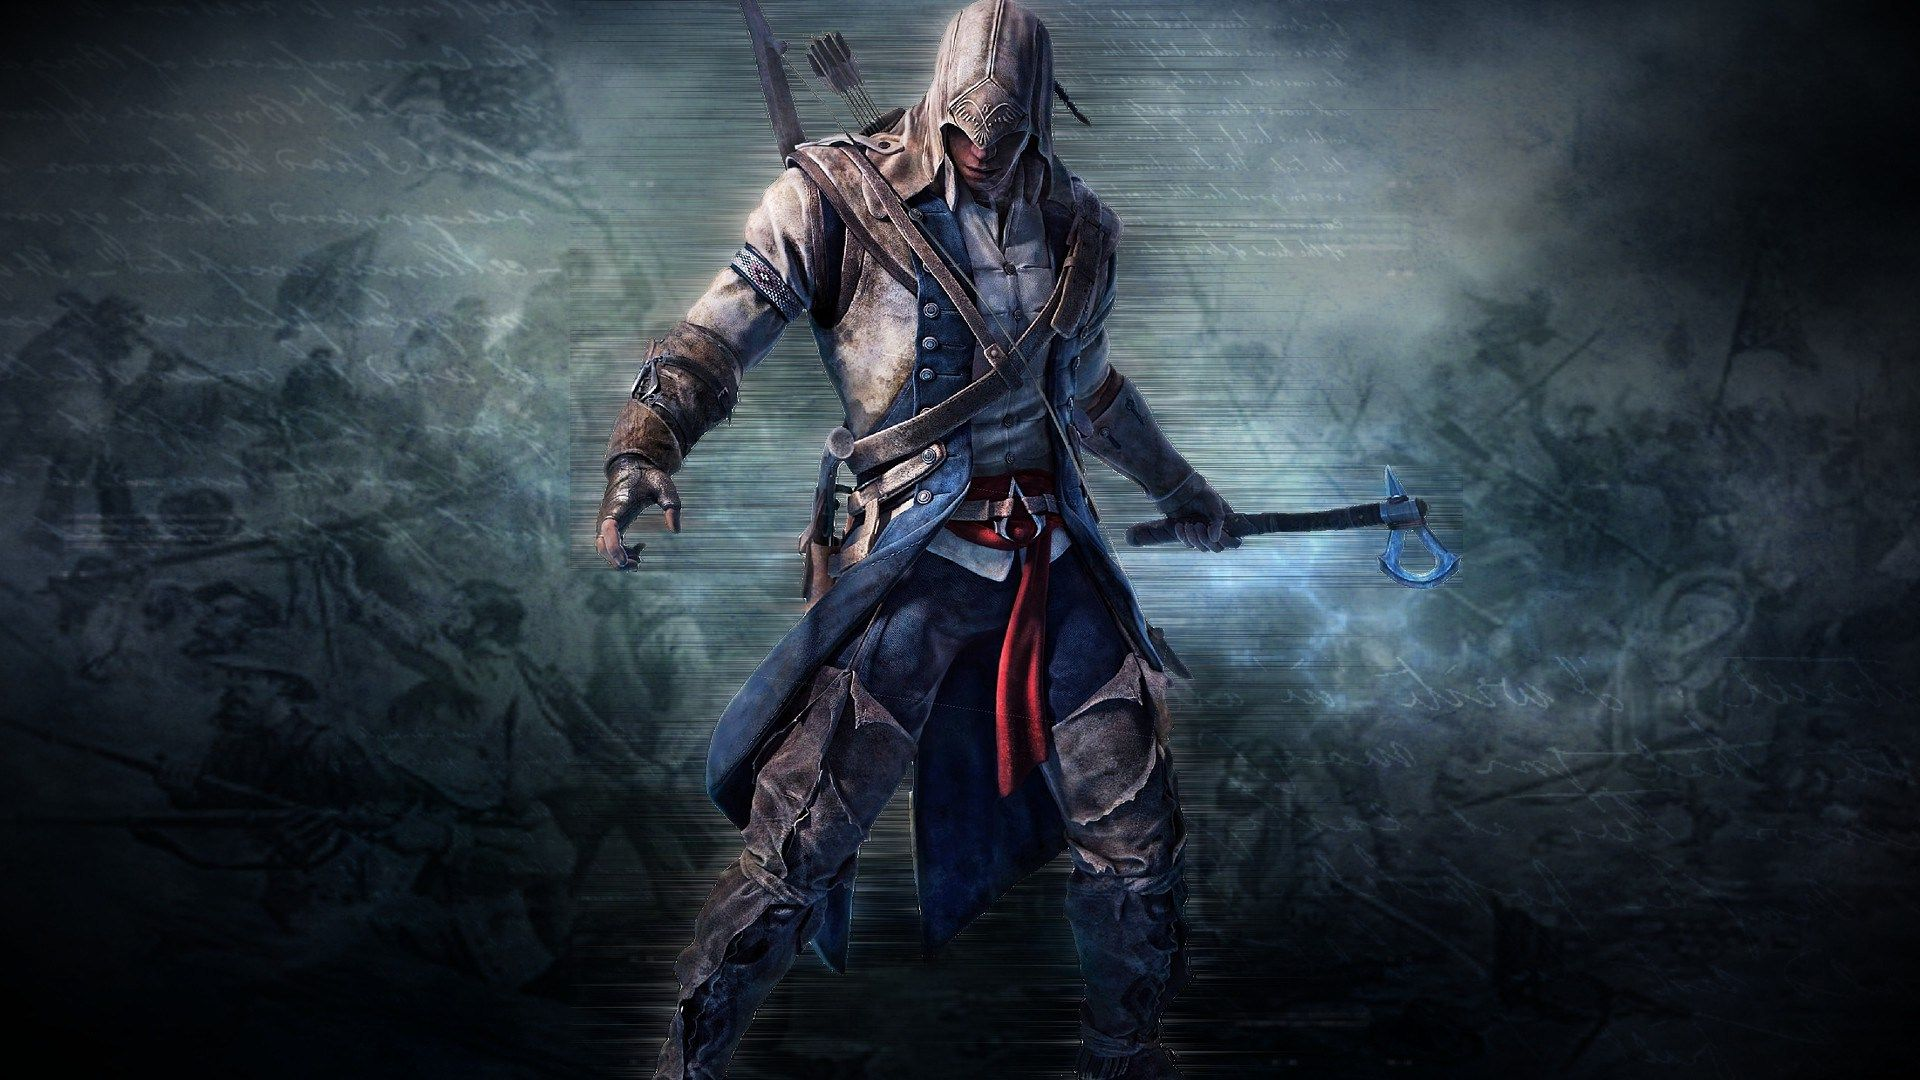 Video Game Wallpapers 1 Epic Heroes Select 45 x HD